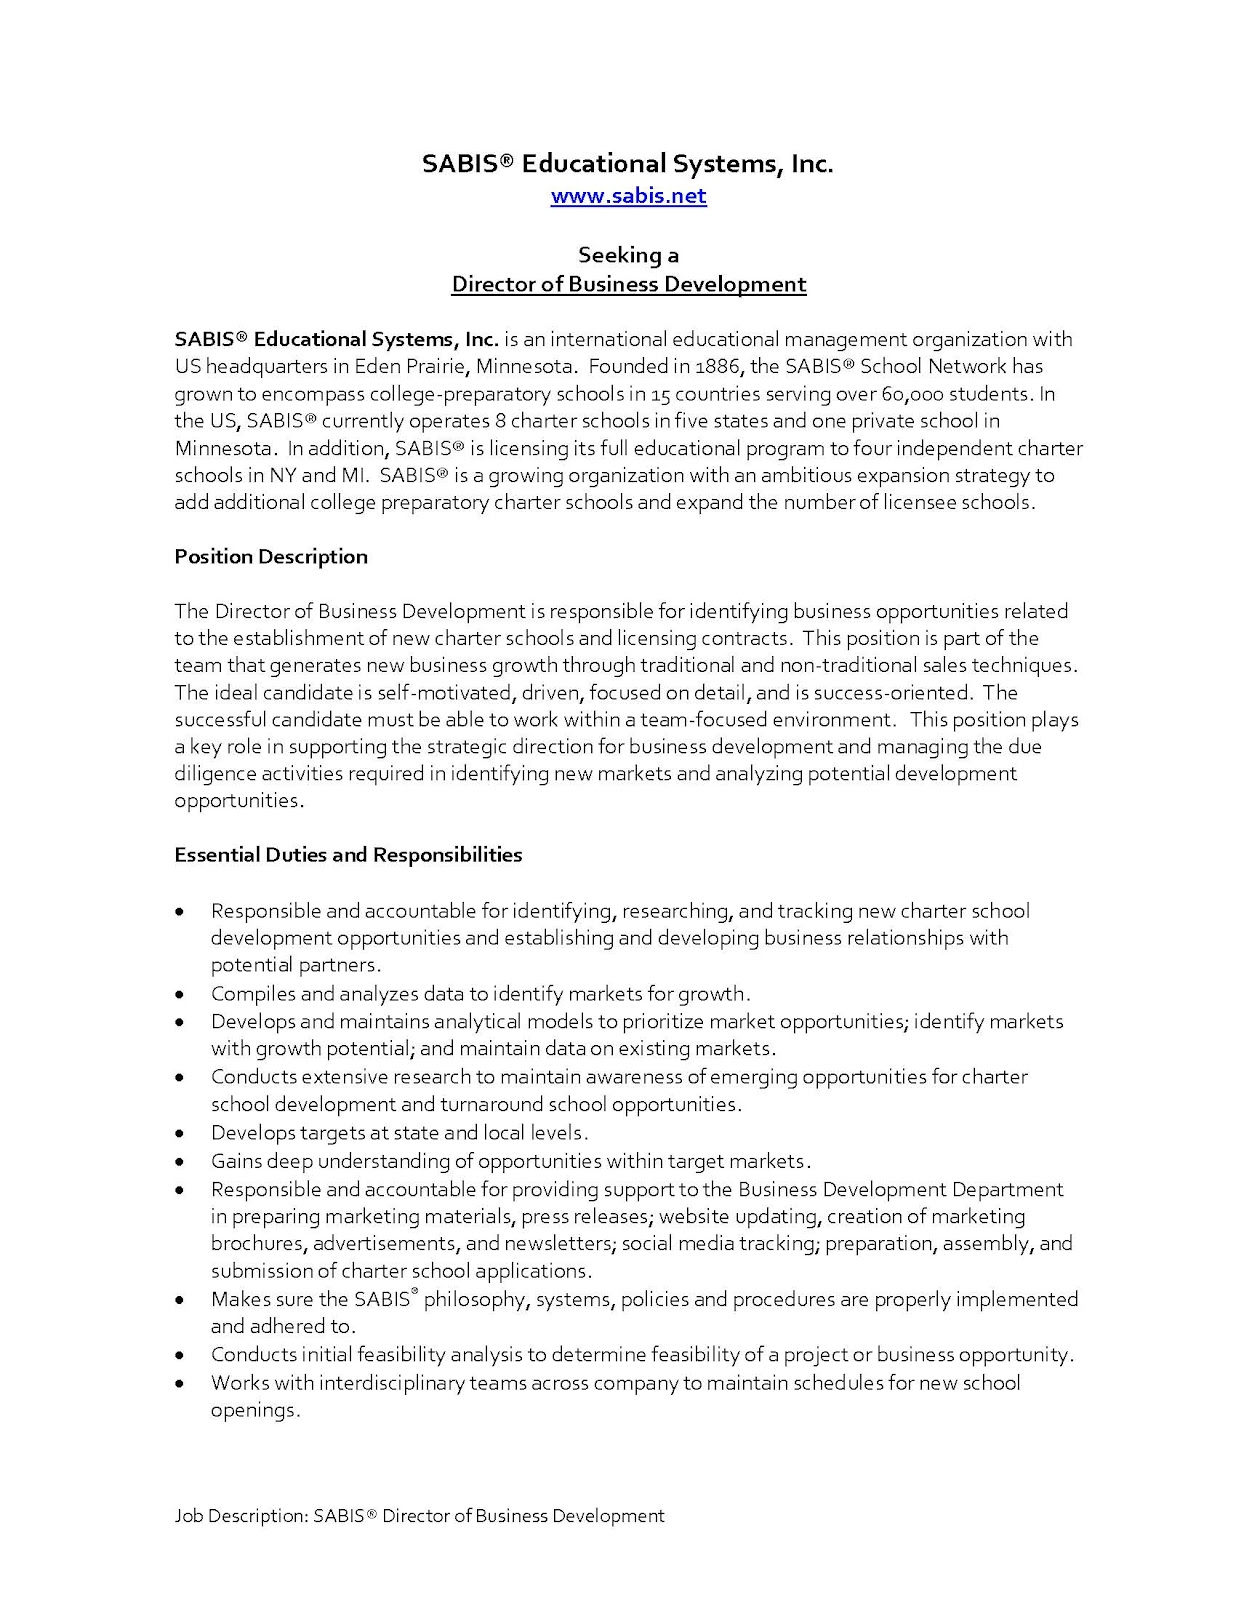 010 Essay Example Literary Criticism Director20business20development20job20description Page 1 Excellent On The Great Gatsby Ideas Conclusion Sample Full